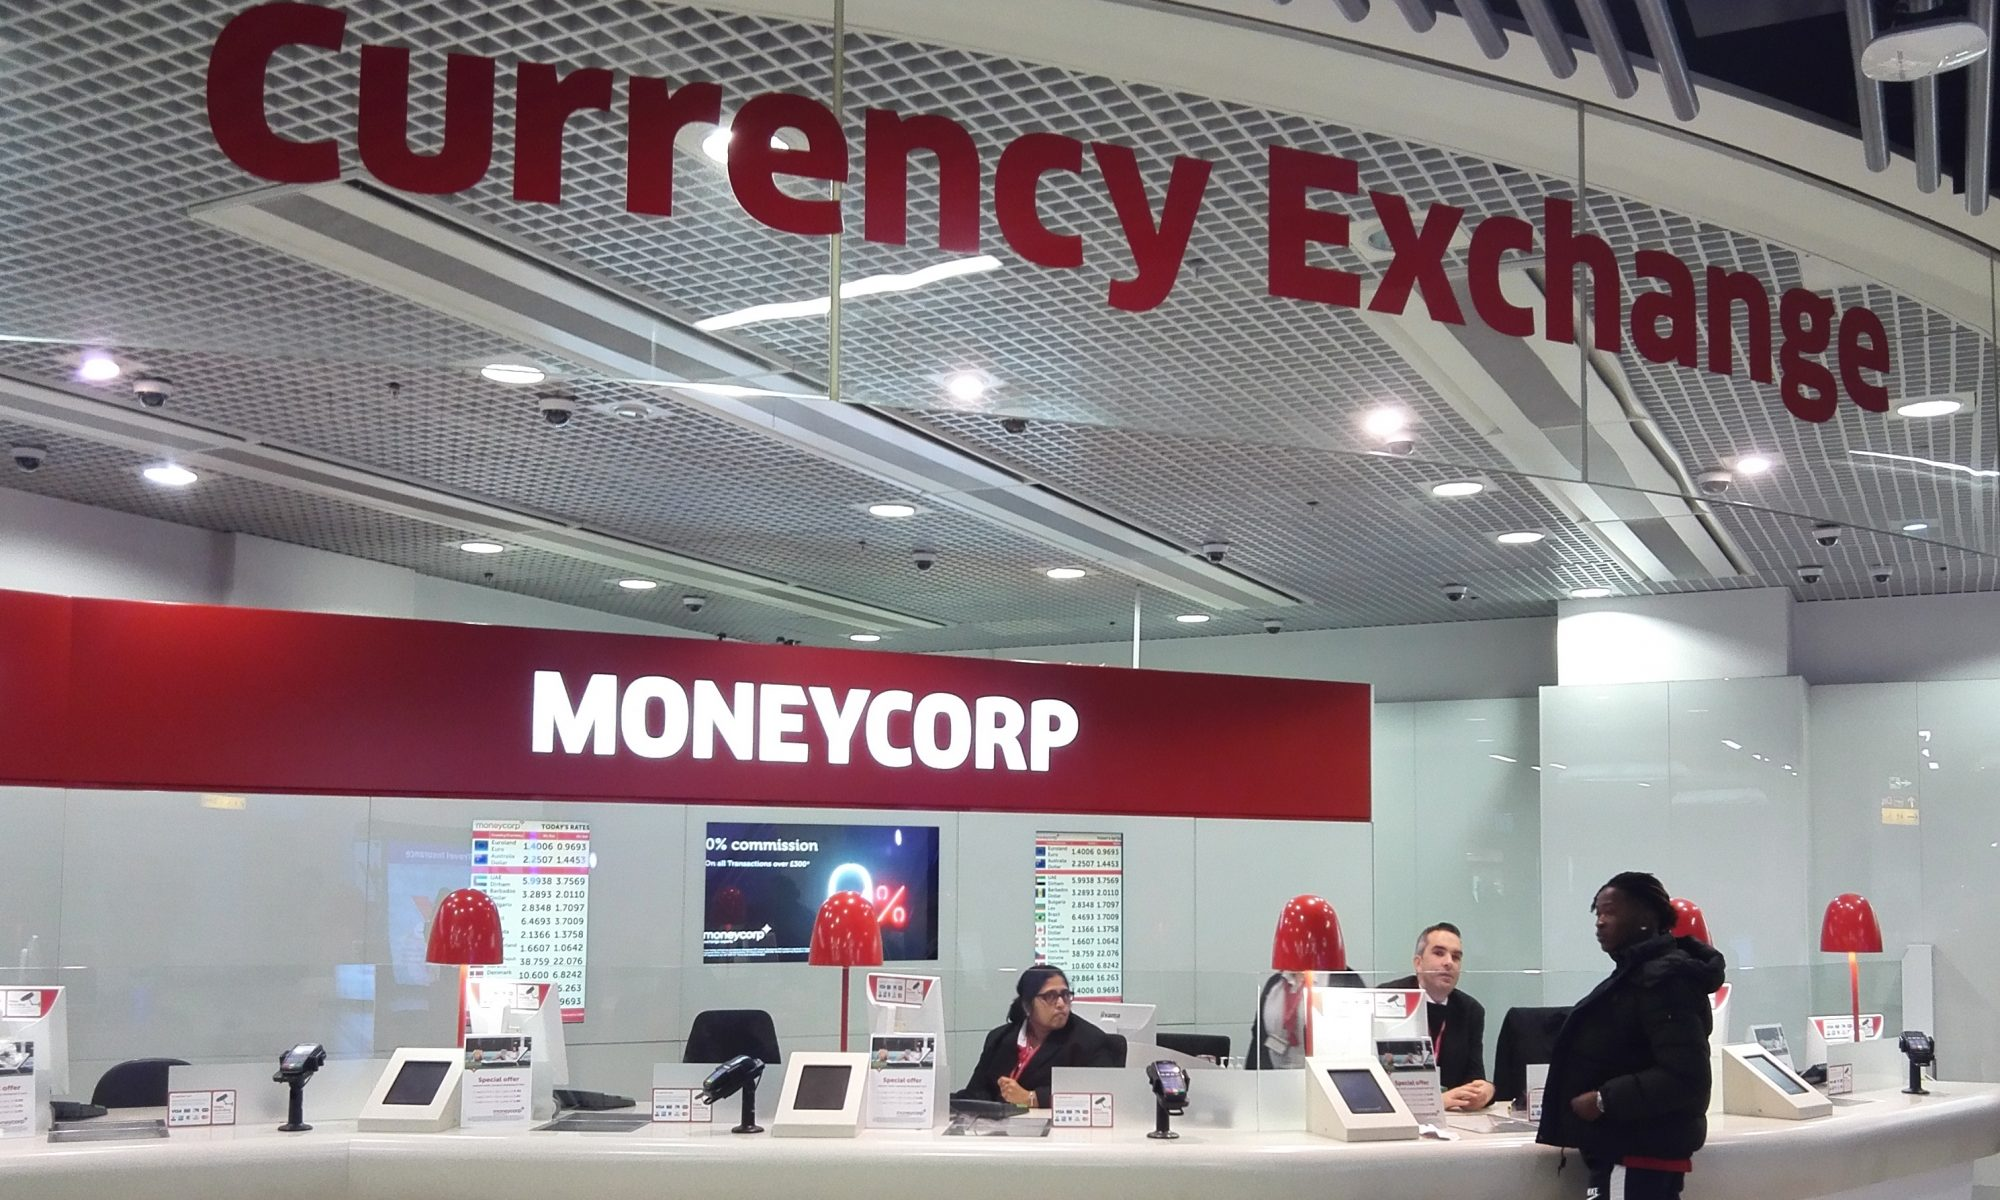 airport currency facilities